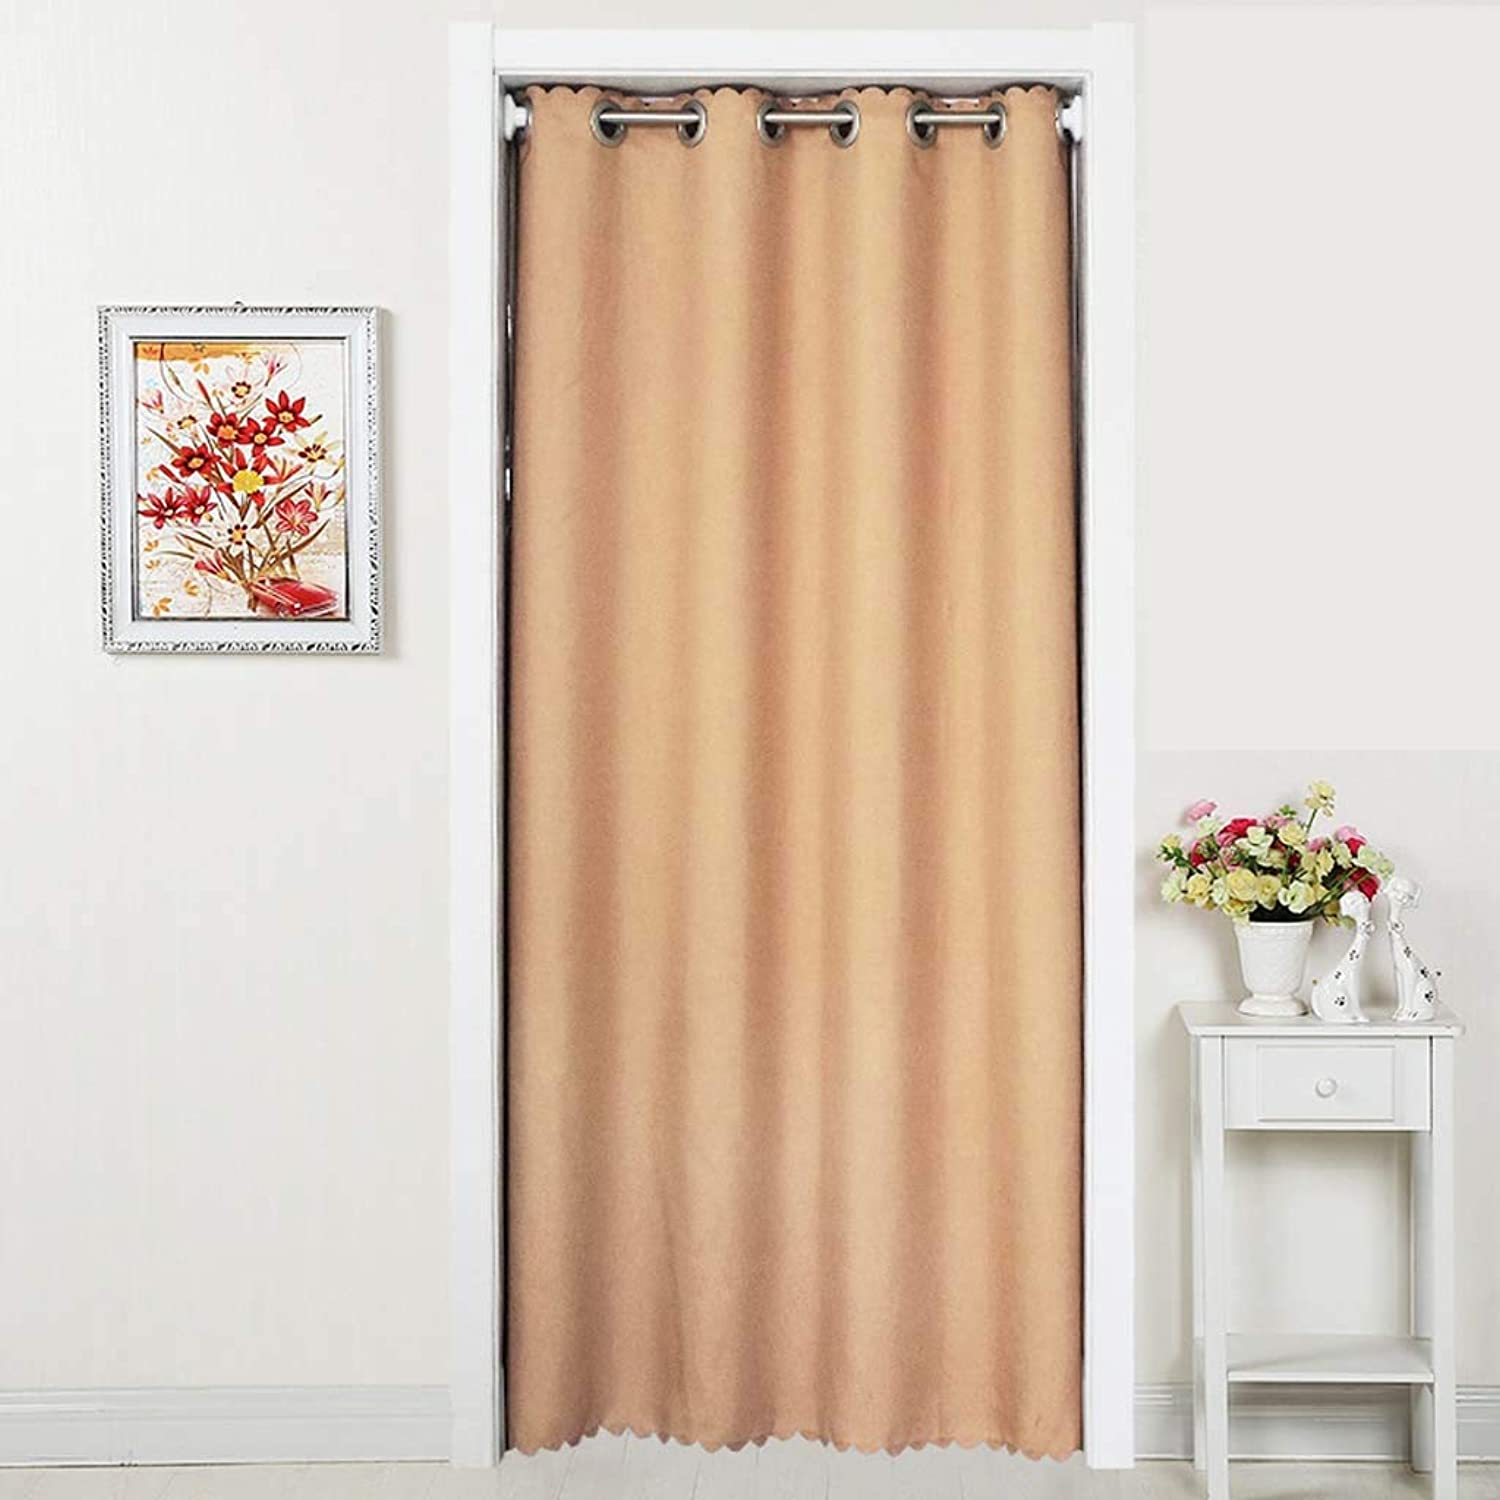 Partition Curtain Free Punch Curtain partition Curtain air Conditioning Insulation Curtain Cloth,2,250  150